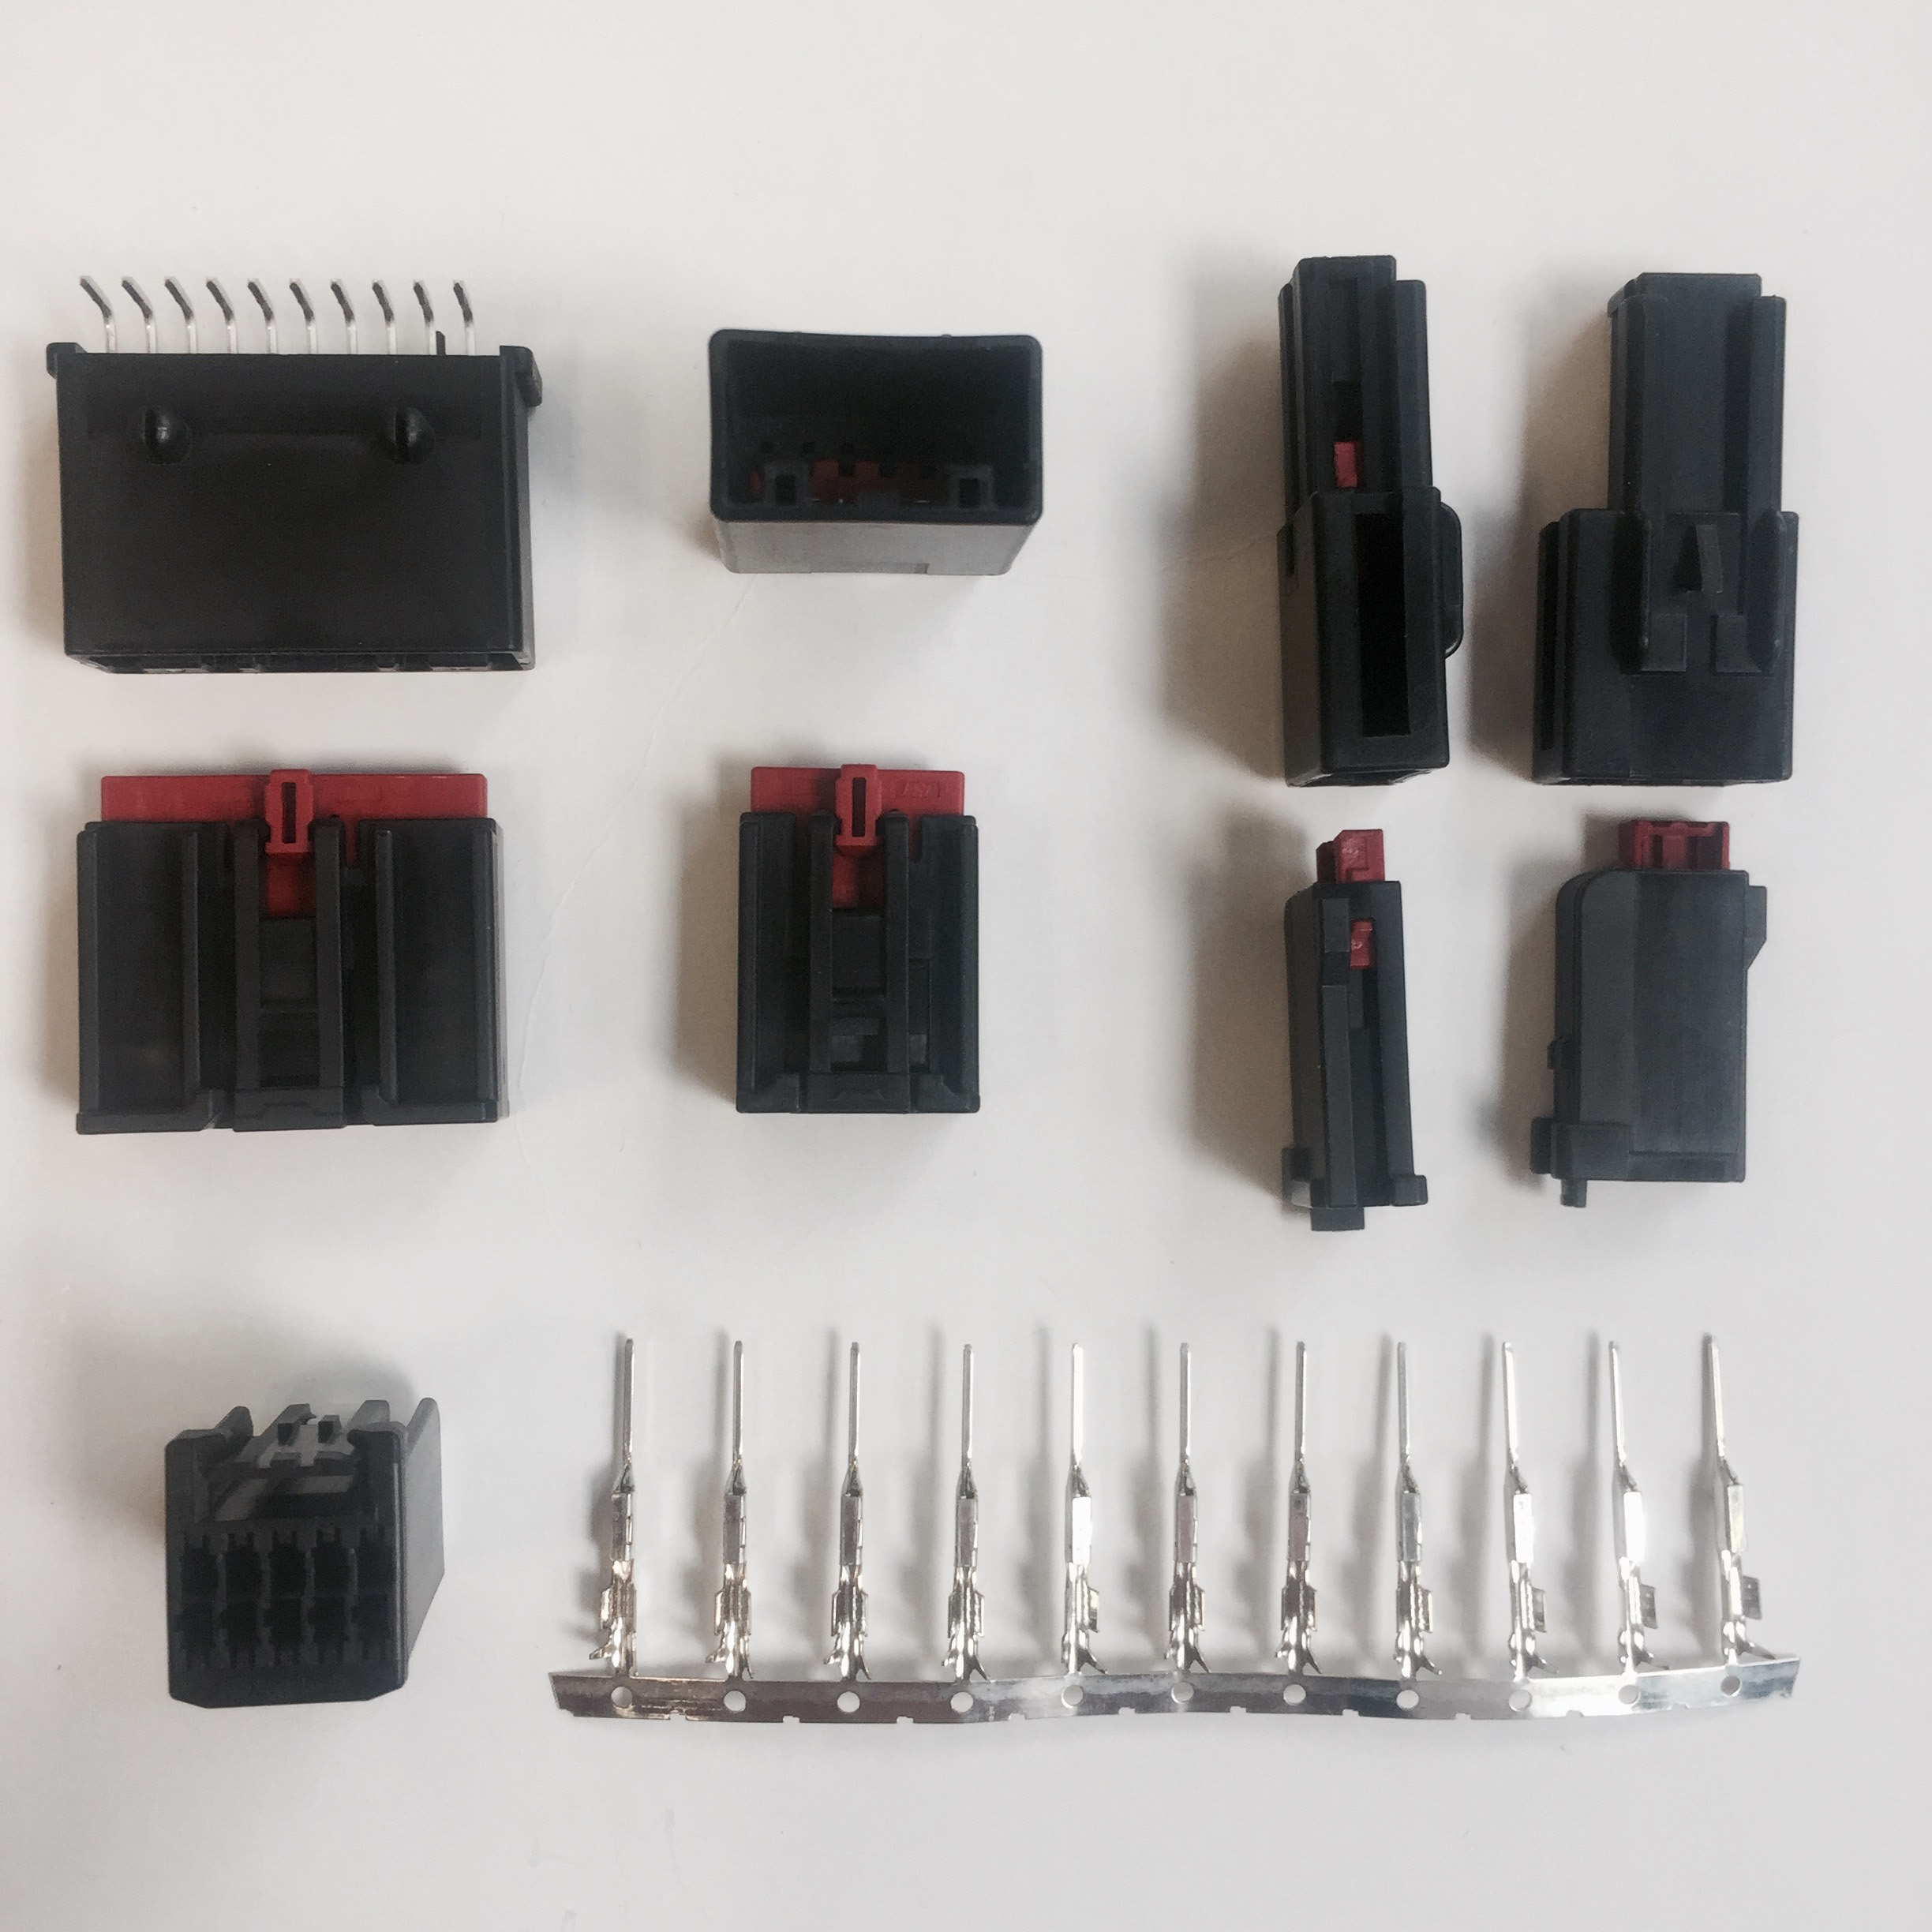 High voltage connectors for electric vehicles